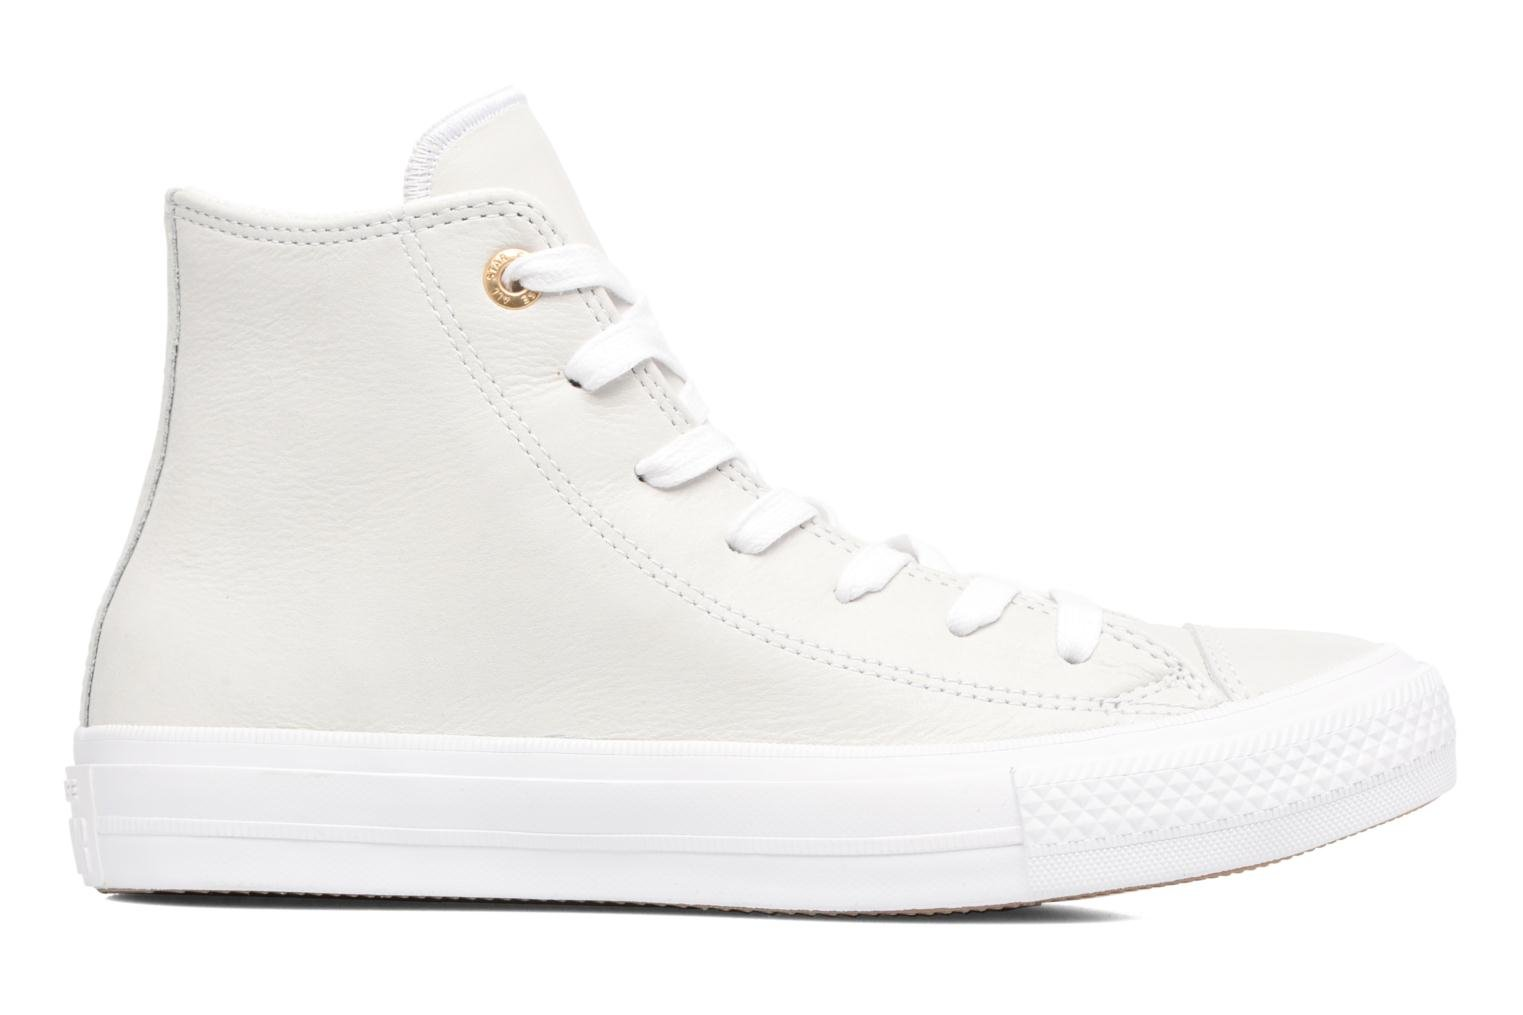 Chuck Taylor All Star II Hi Craft Leather Blue Flower/White/White